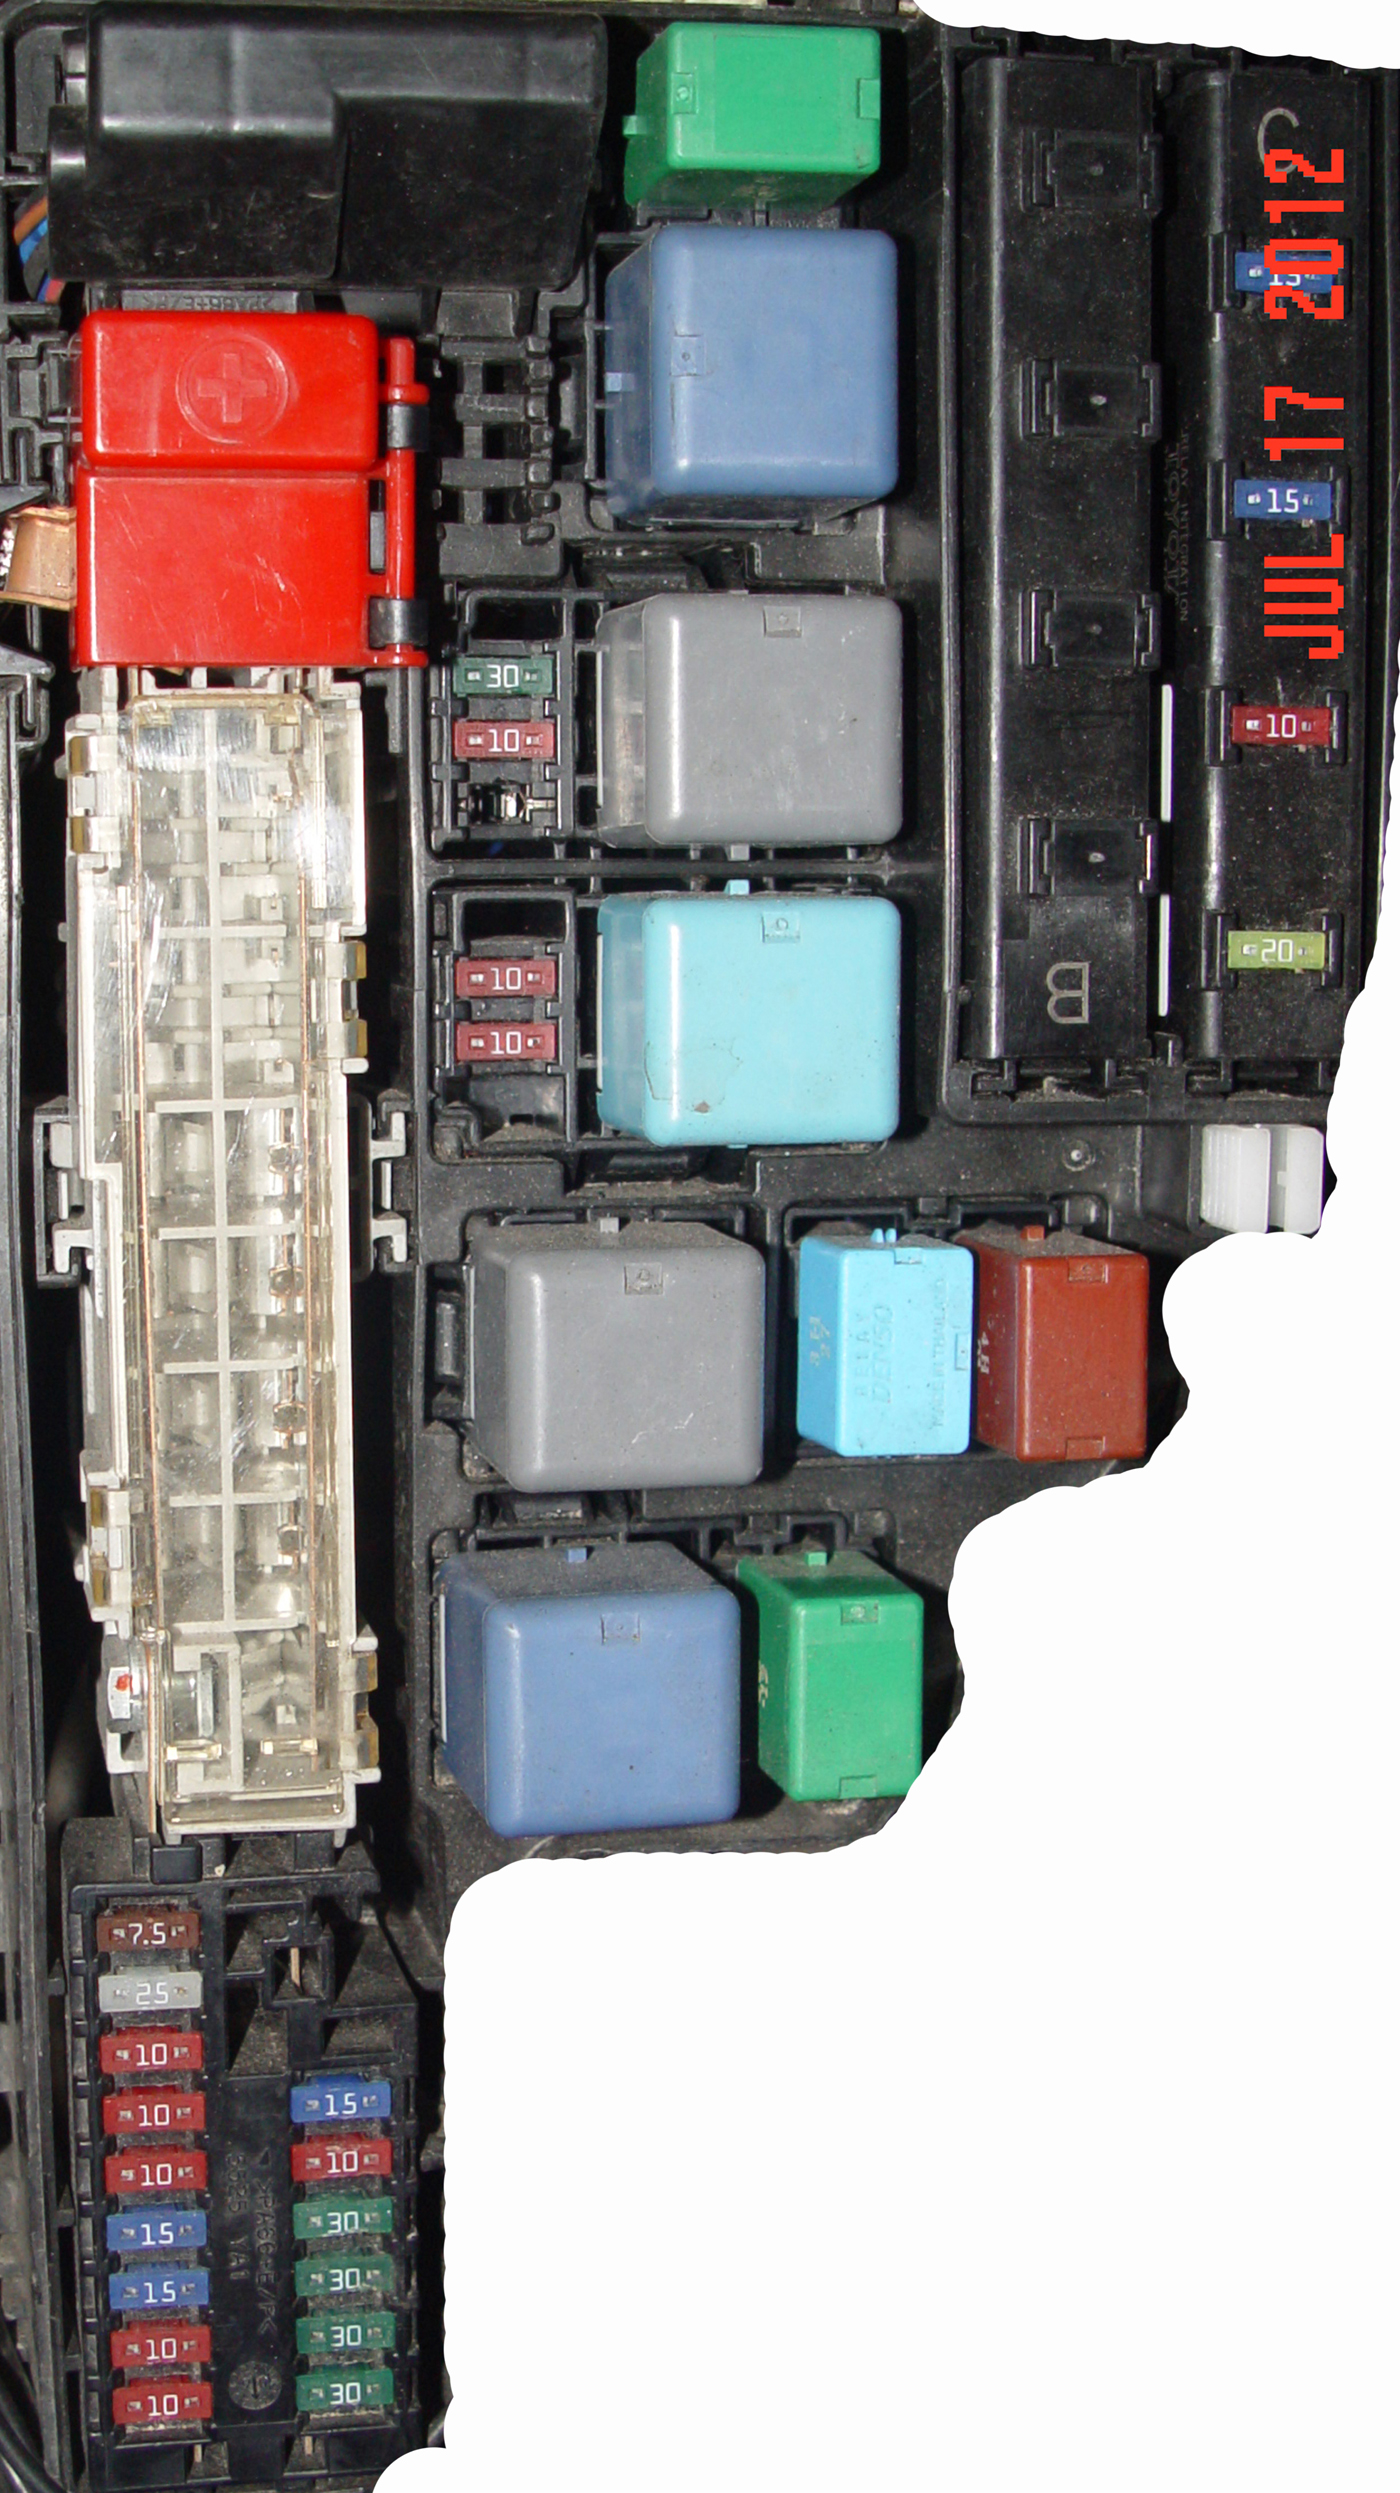 2004 toyota prius fuse box diagram iirGtIL 2008 toyota prius fuse box 2007 toyota prius fuse box \u2022 free access to 2010 prius fuse box at readyjetset.co